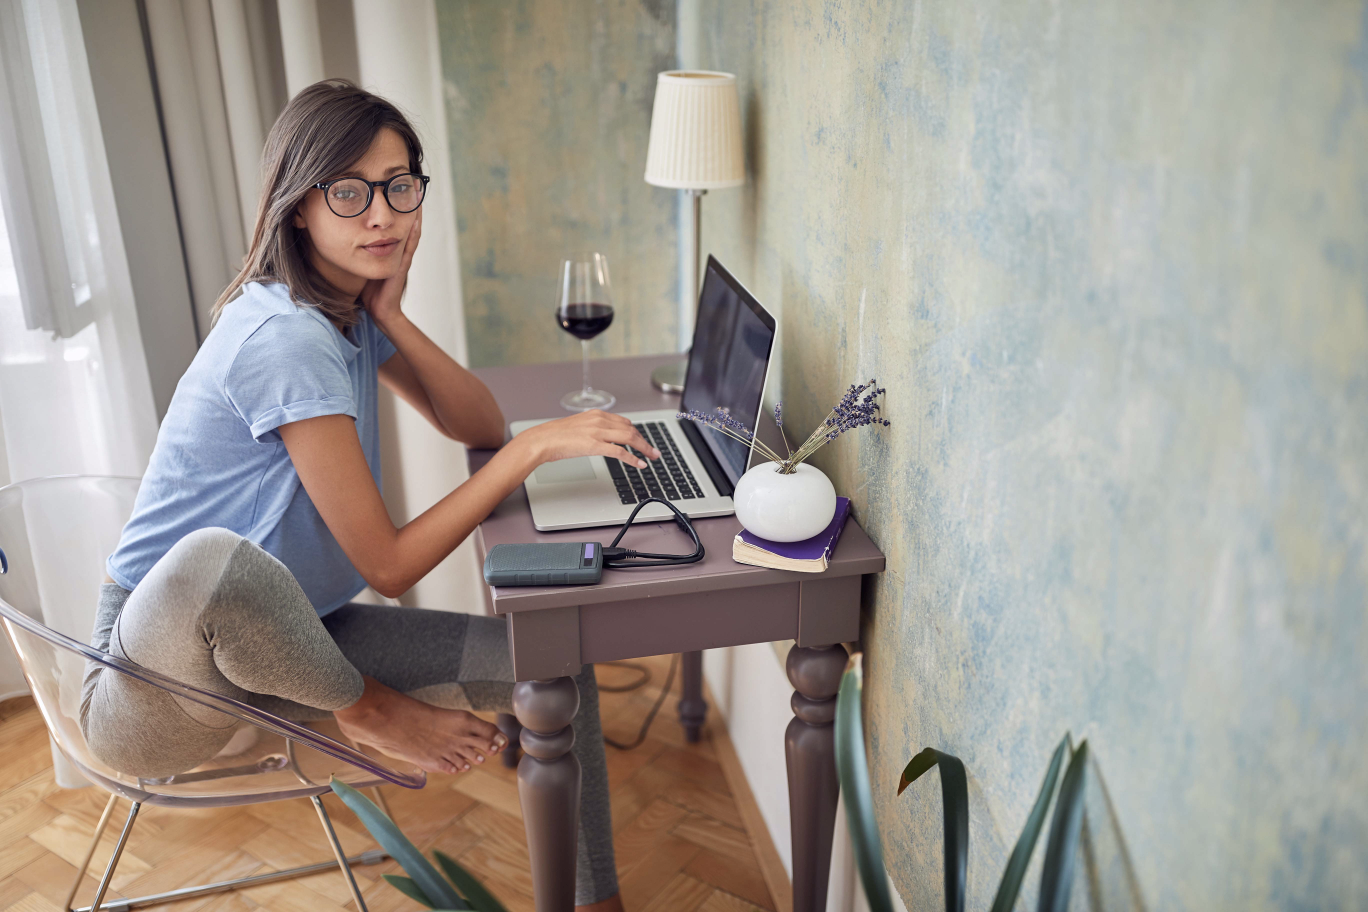 Are you making time for yourself while working from home?